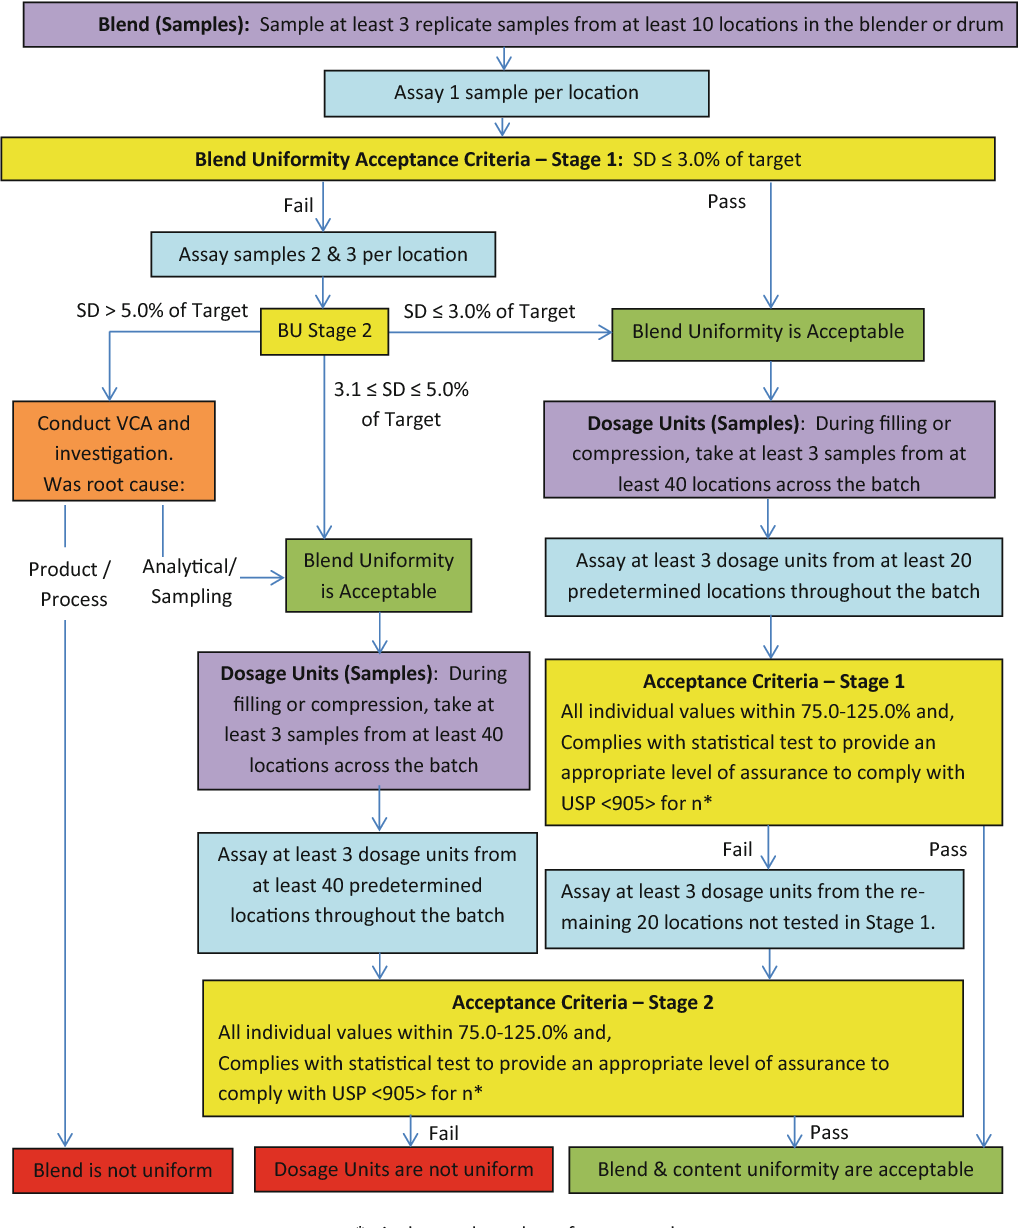 hight resolution of 1 process flow diagram for assessment of blend and content uniformity for process design